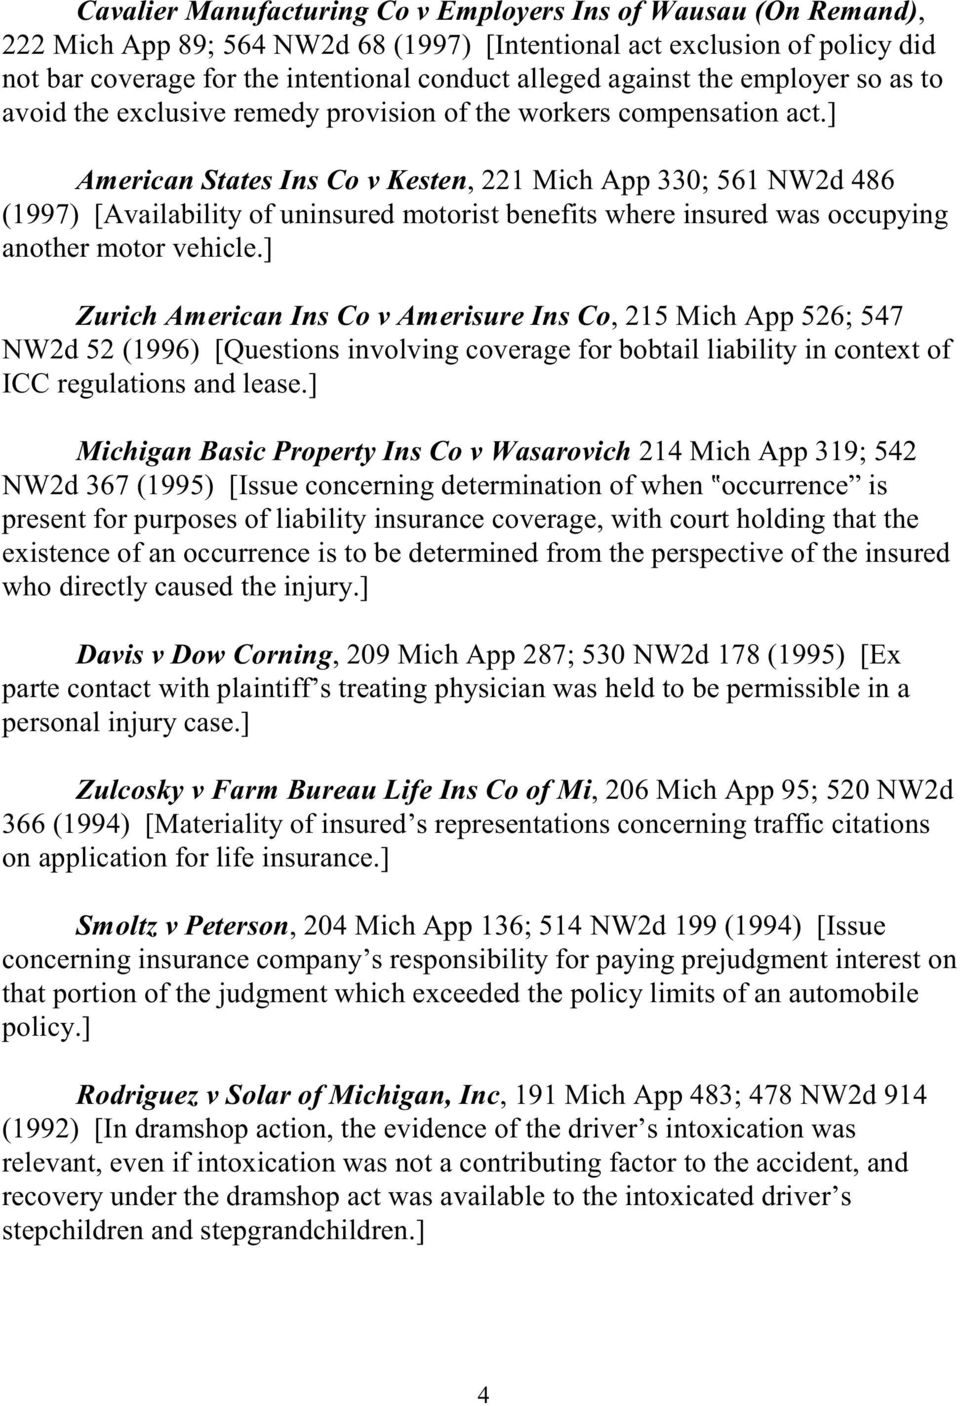 ] American States Ins Co v Kesten, 221 Mich App 330; 561 NW2d 486 (1997) [Availability of uninsured motorist benefits where insured was occupying another motor vehicle.